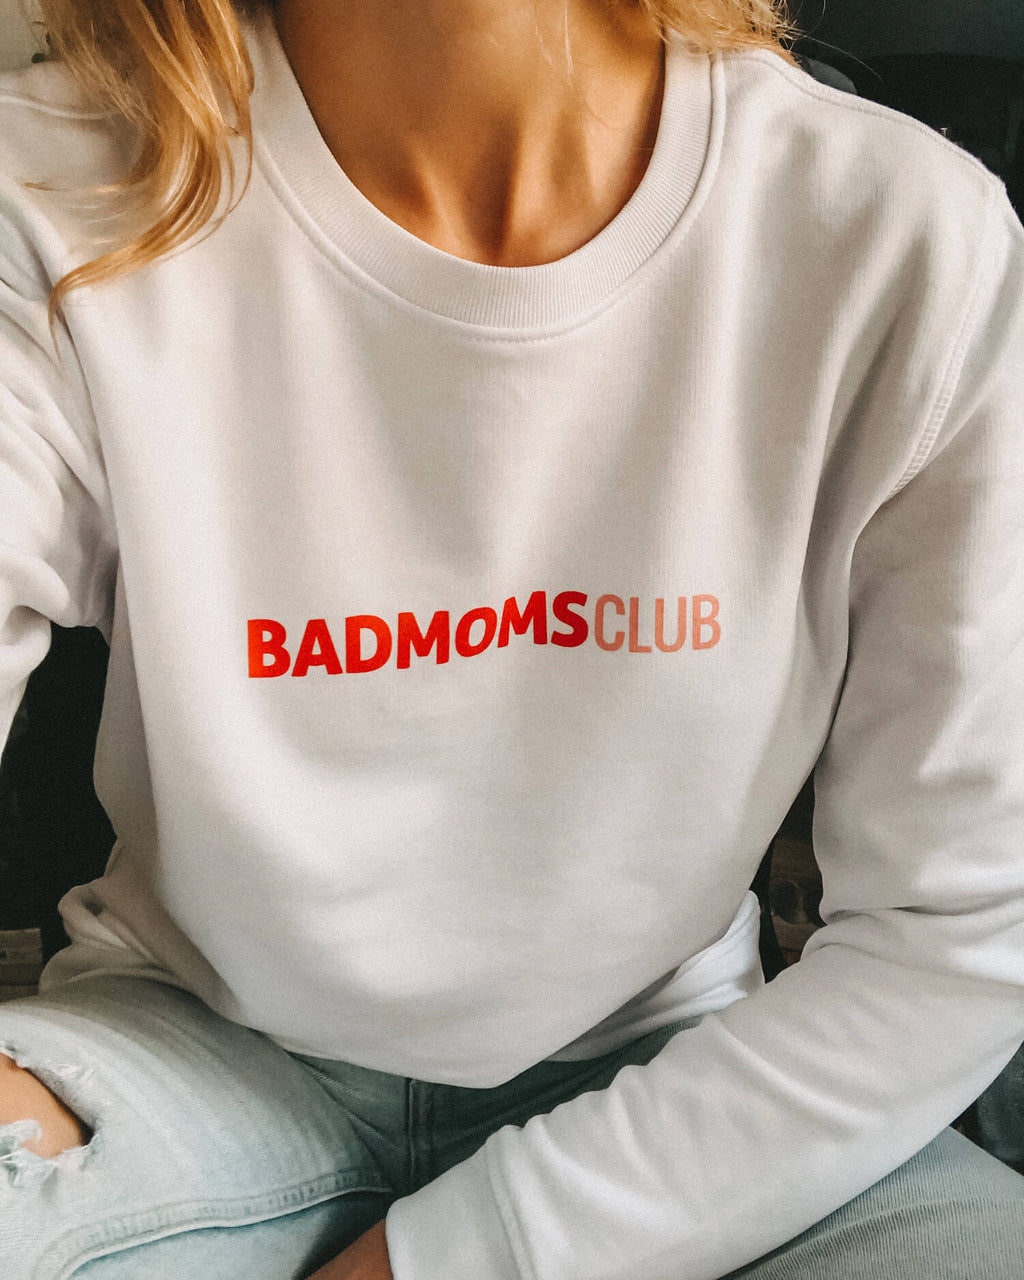 Bad Moms Club Sweater (Second Chance)